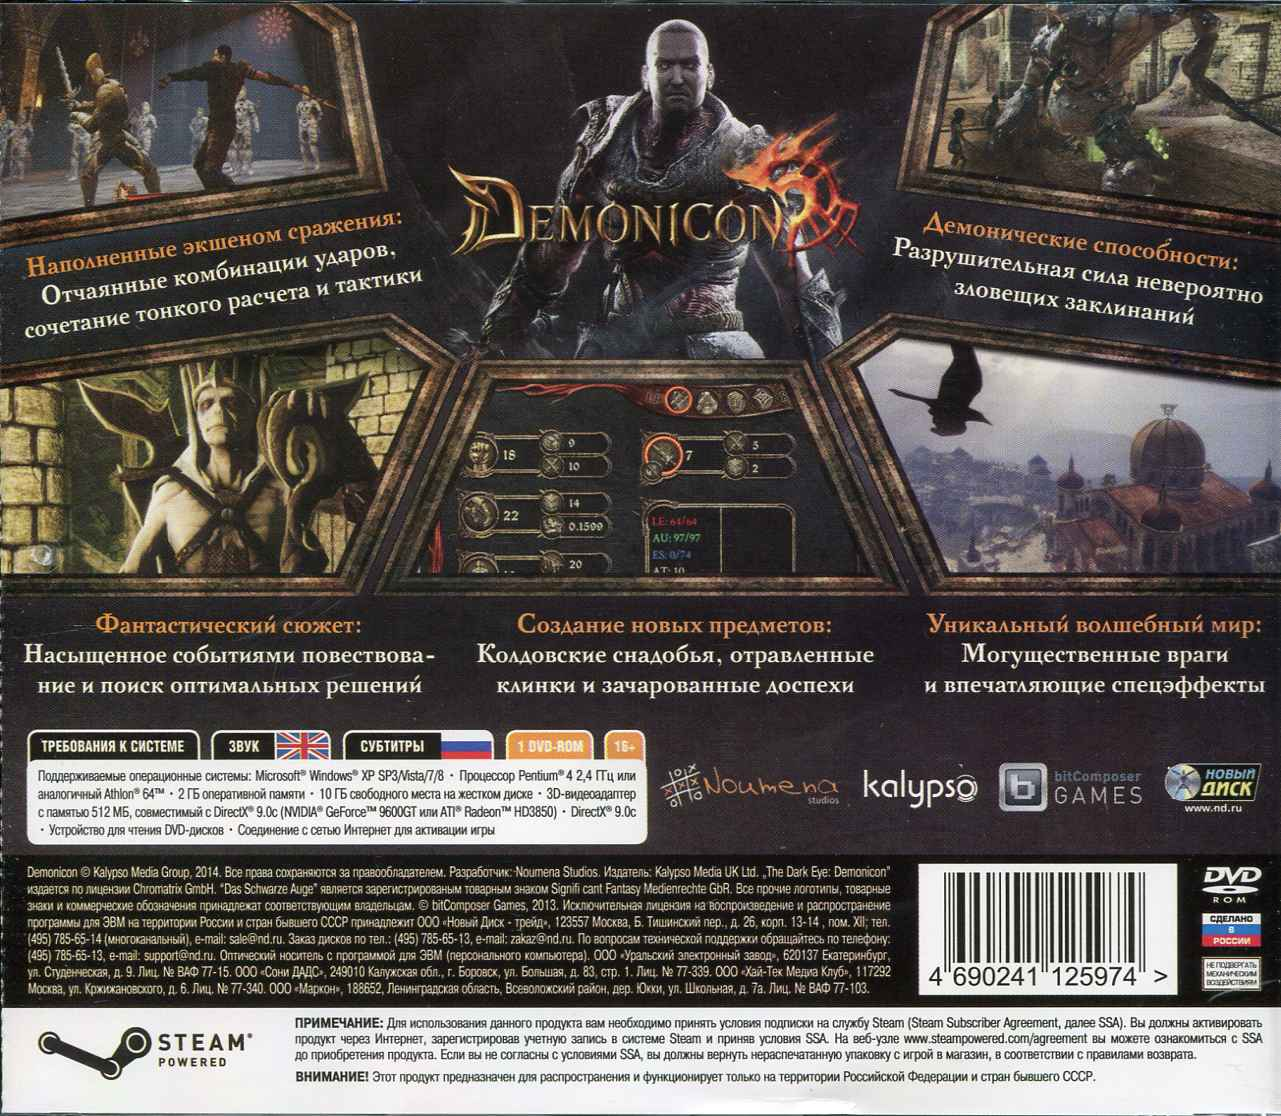 Demonicon (activation key in Steam)